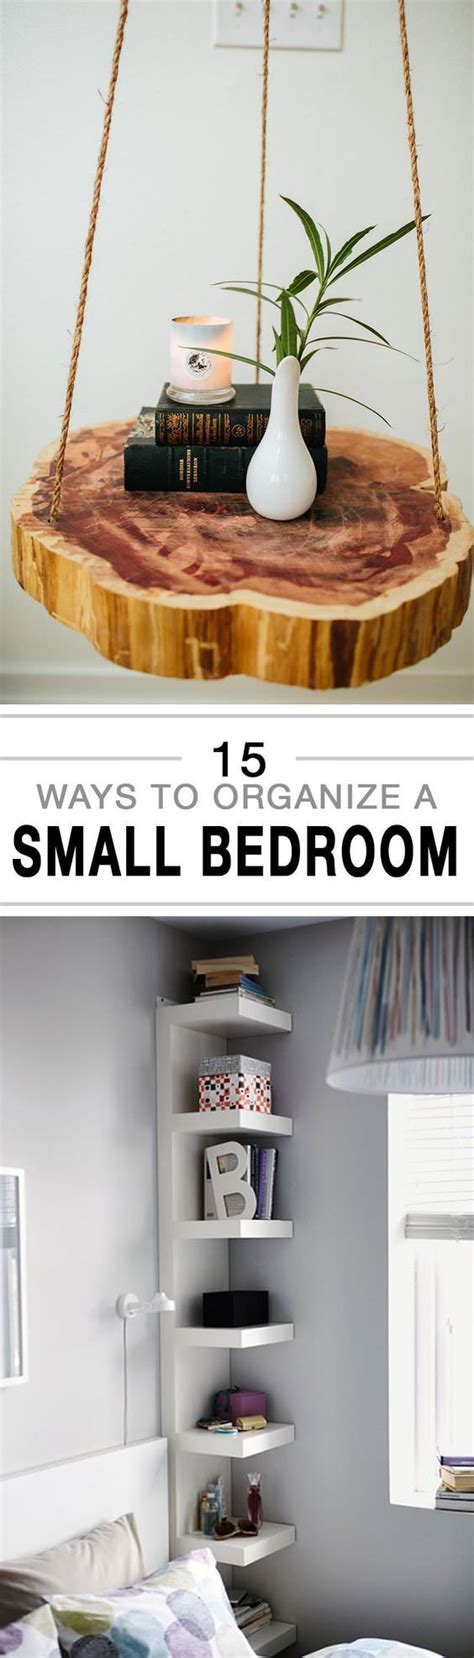 Organize A Small Bedroom by 15 Ways To Organize A Small Bedroom House